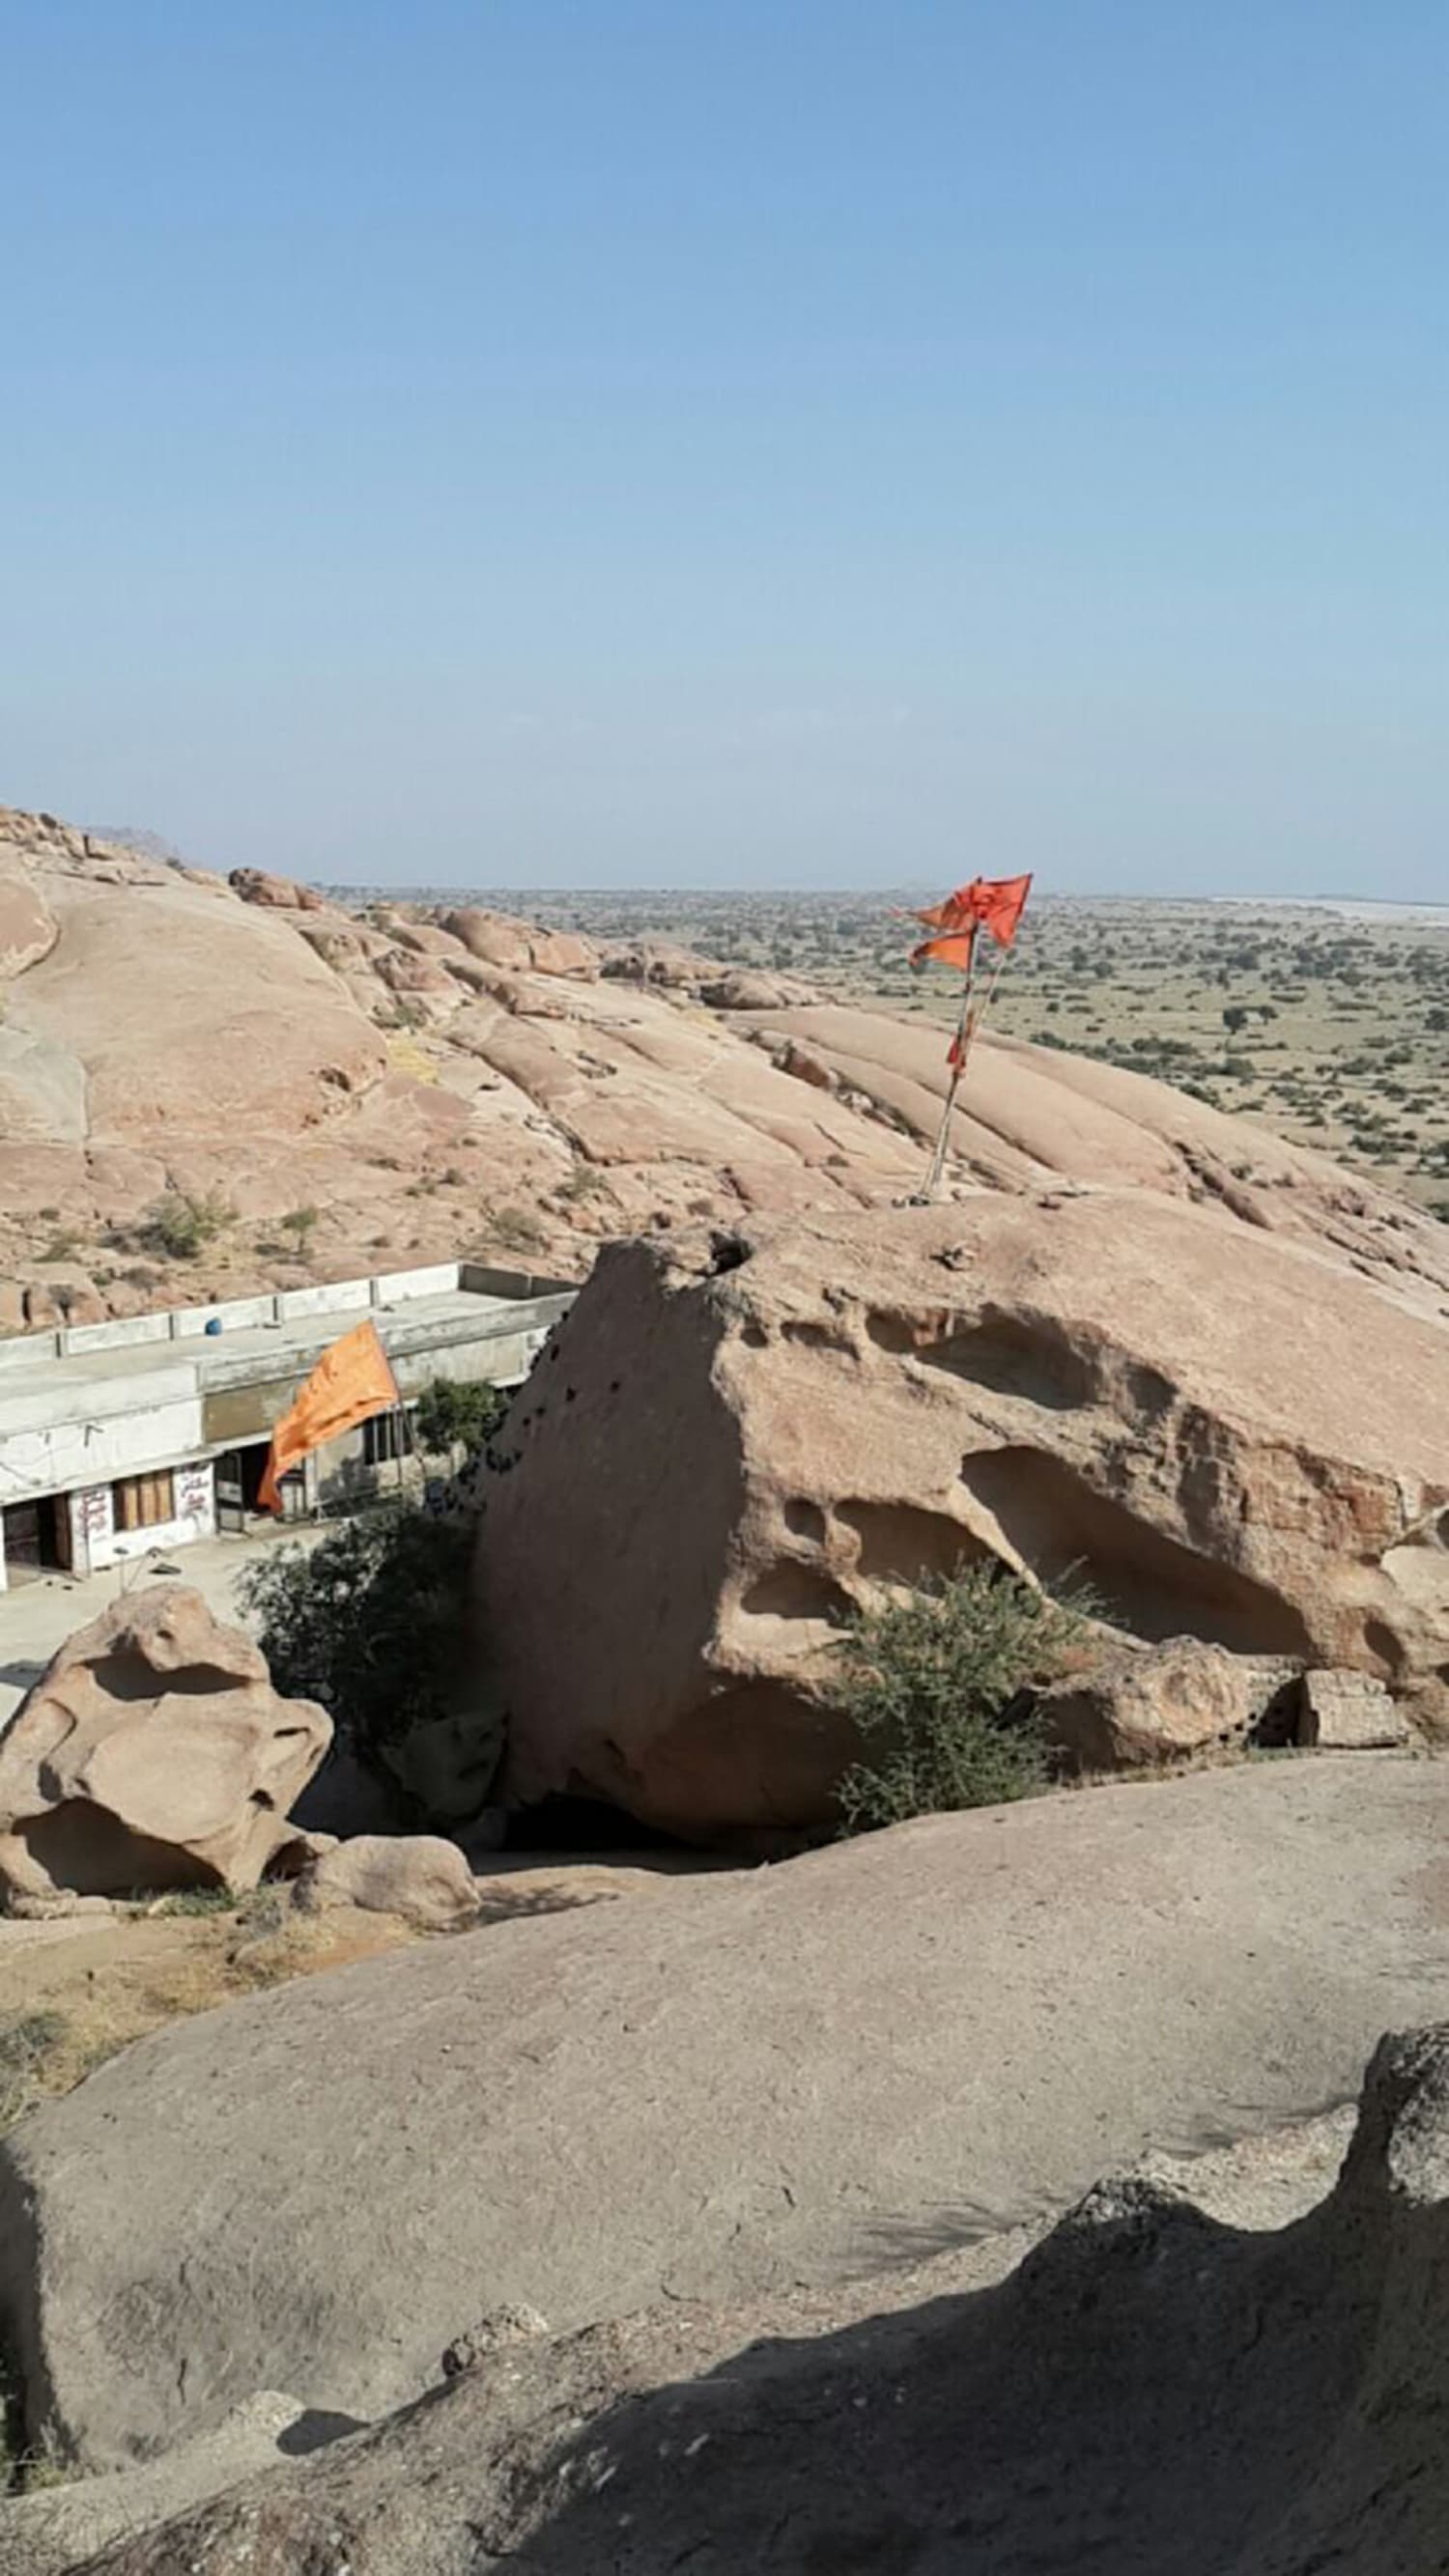 An aerial view of Kali temple, with the Indian landscape in the background.